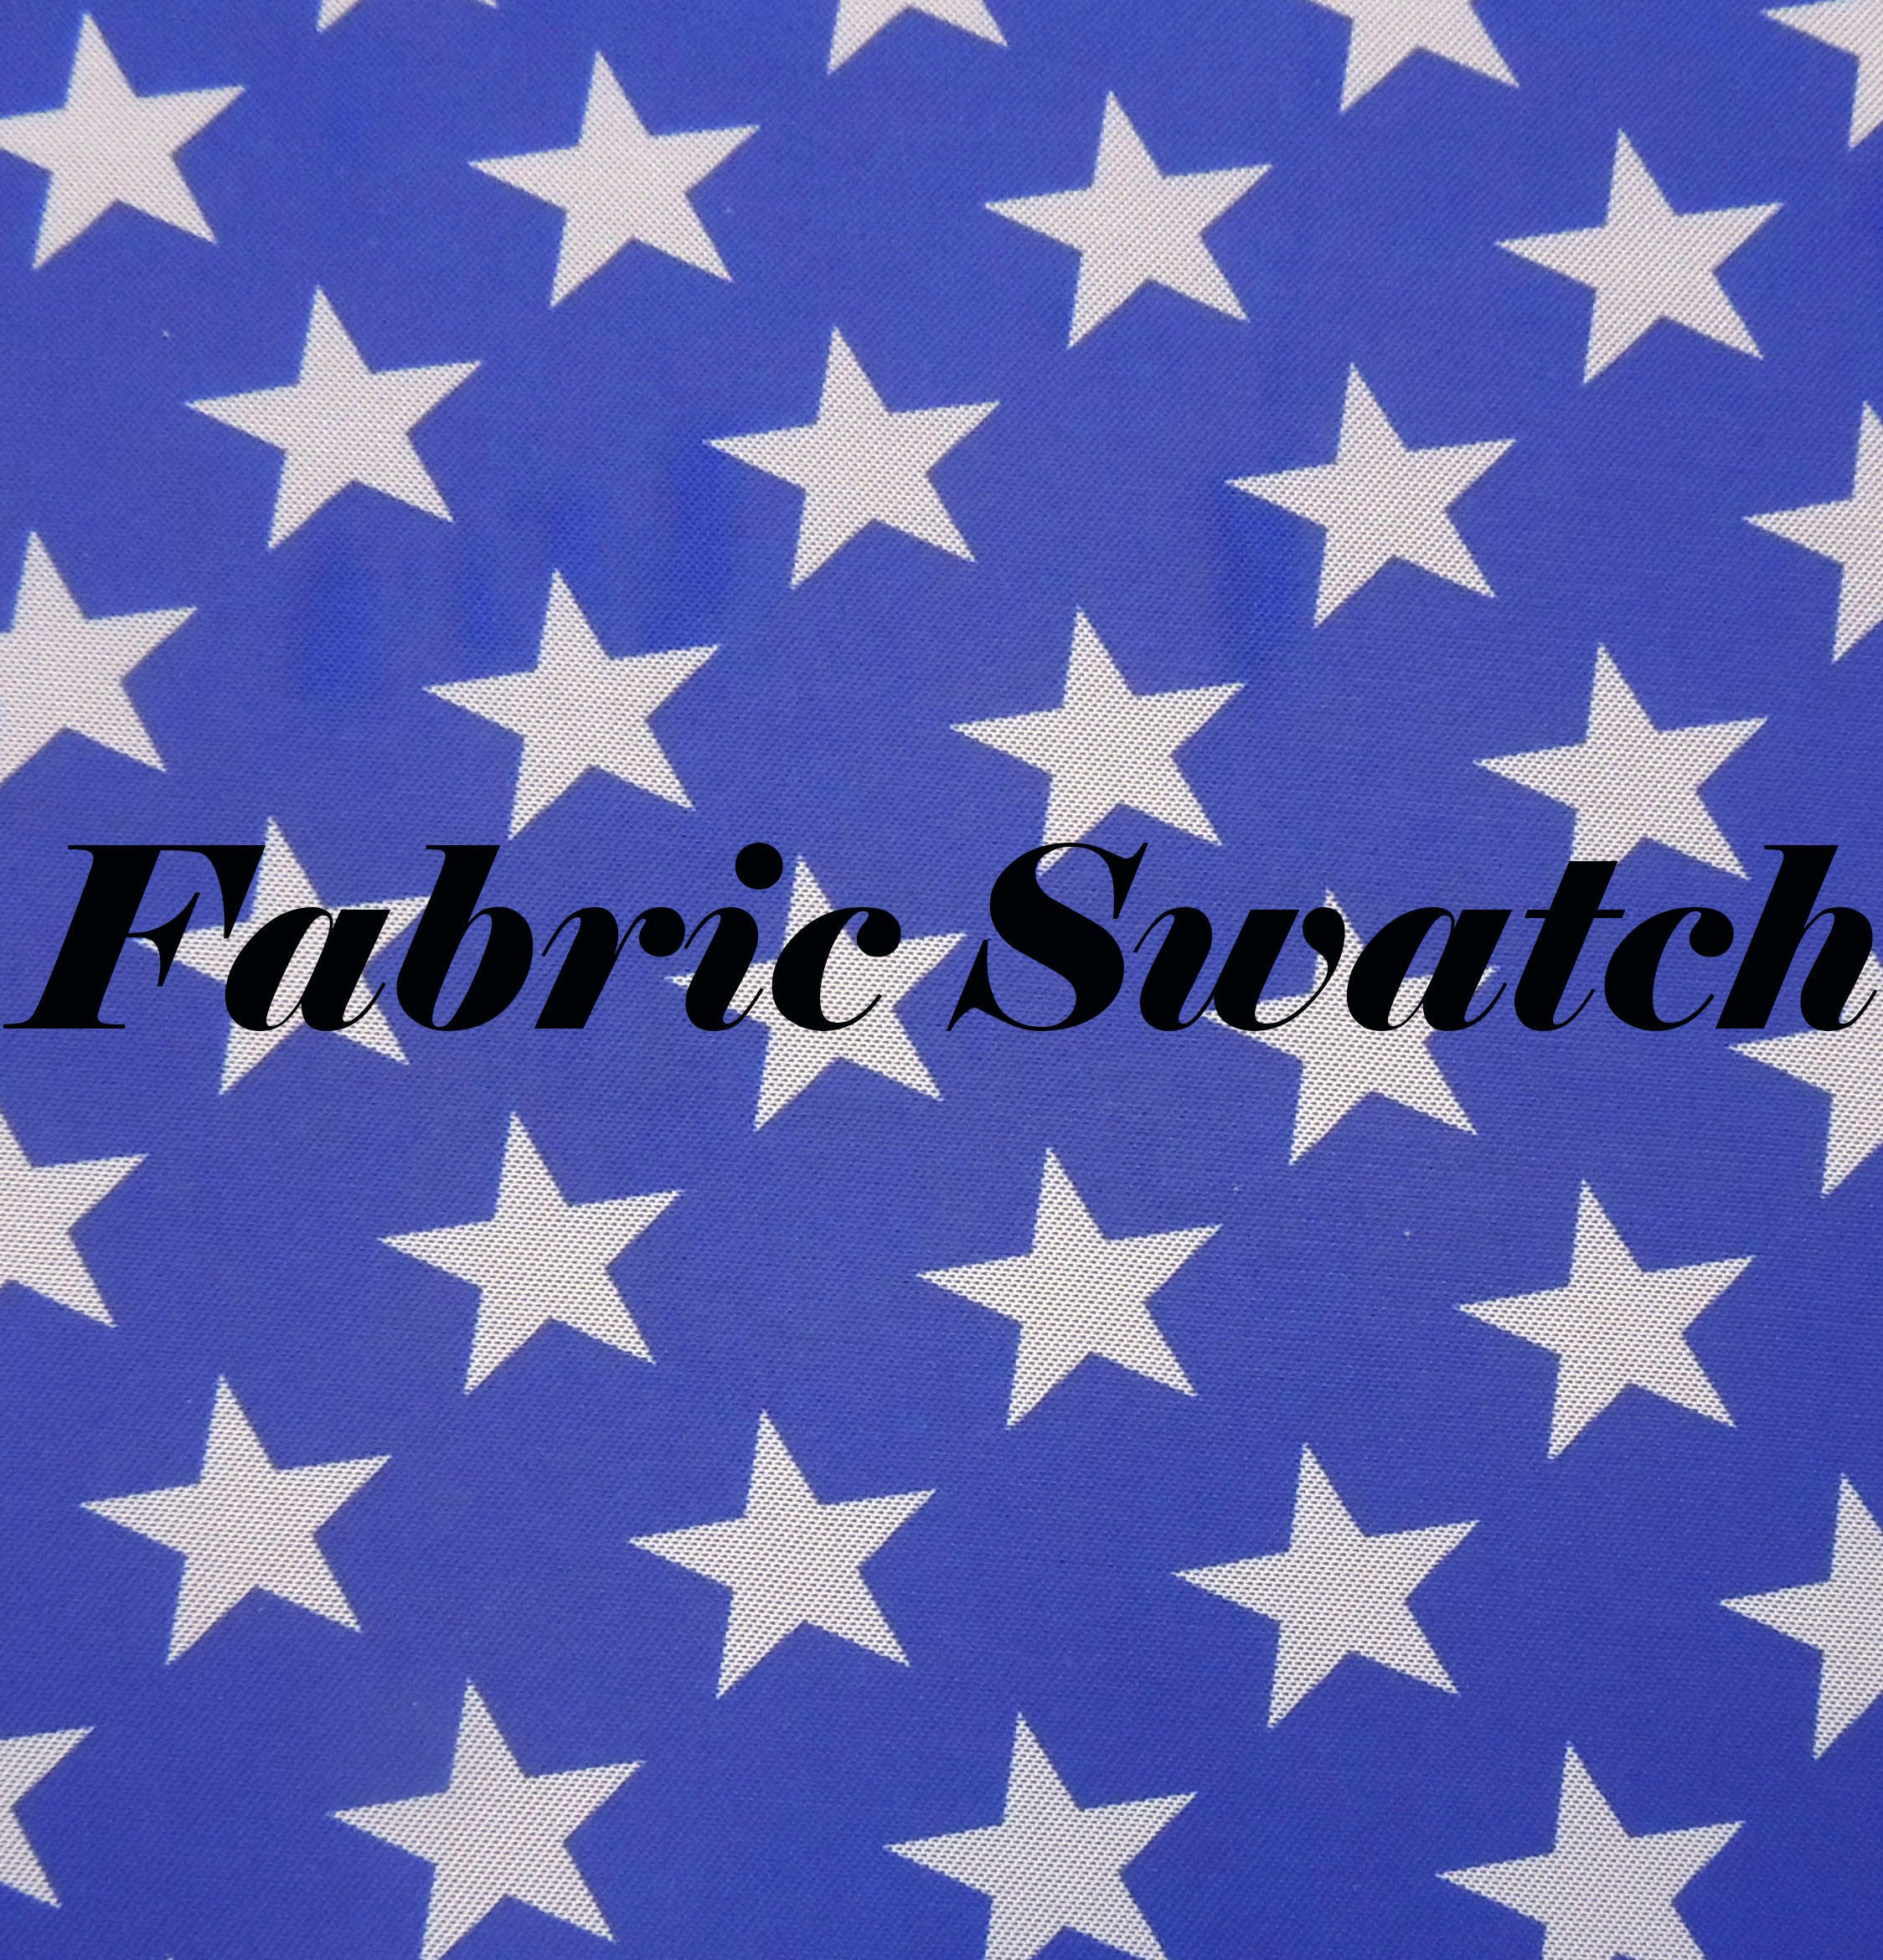 Fabric swatch stars star print fabric blue and white star for Star fabric australia